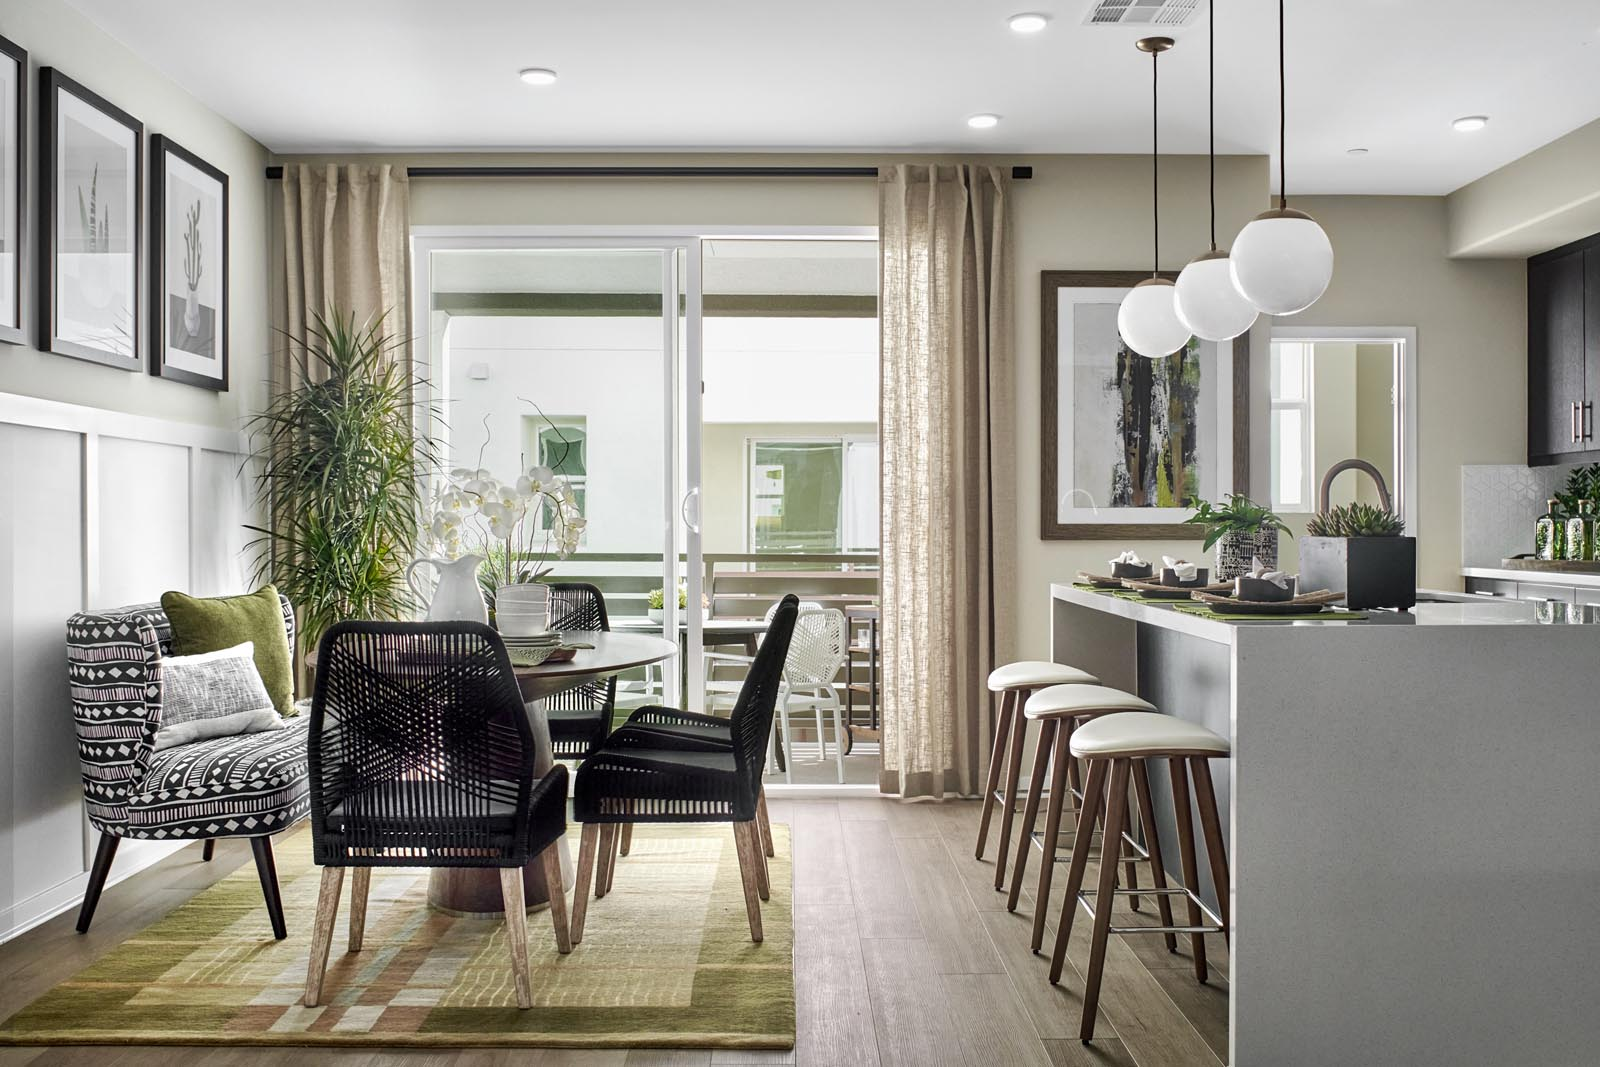 Dining Area   Residence 3   Enliven   New Homes in Rancho Cucamonga, CA   Van Daele Homes